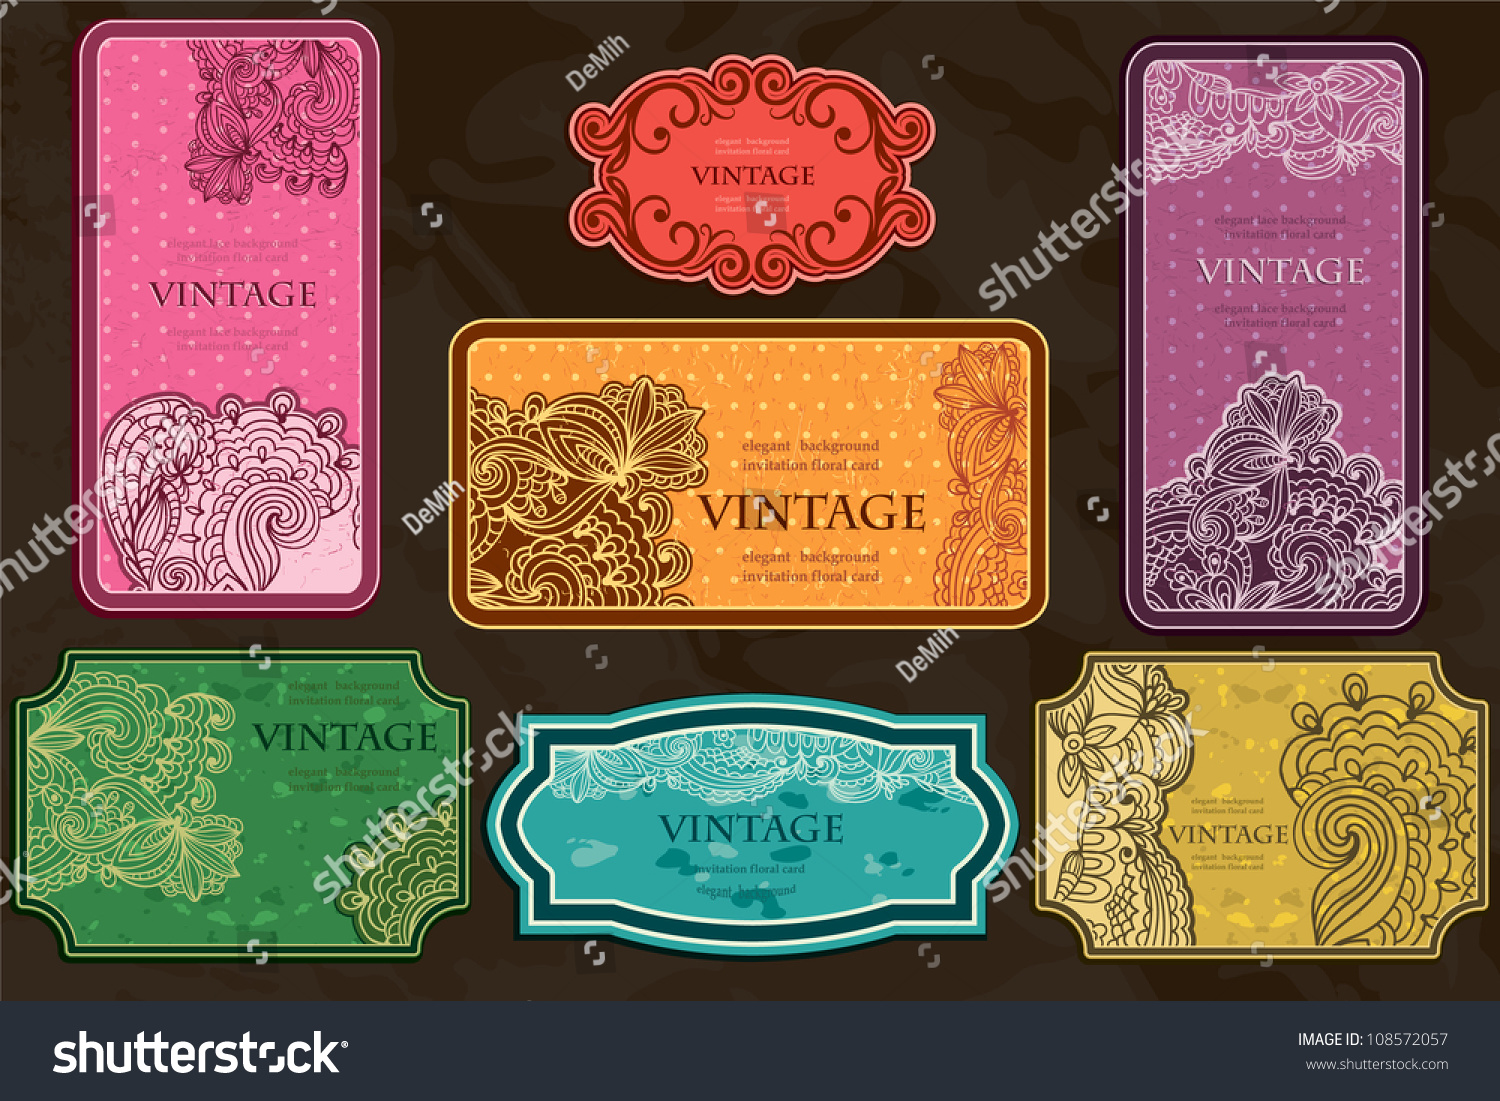 Big Set Vintage Business Cards Labels Stock Vector HD (Royalty Free ...